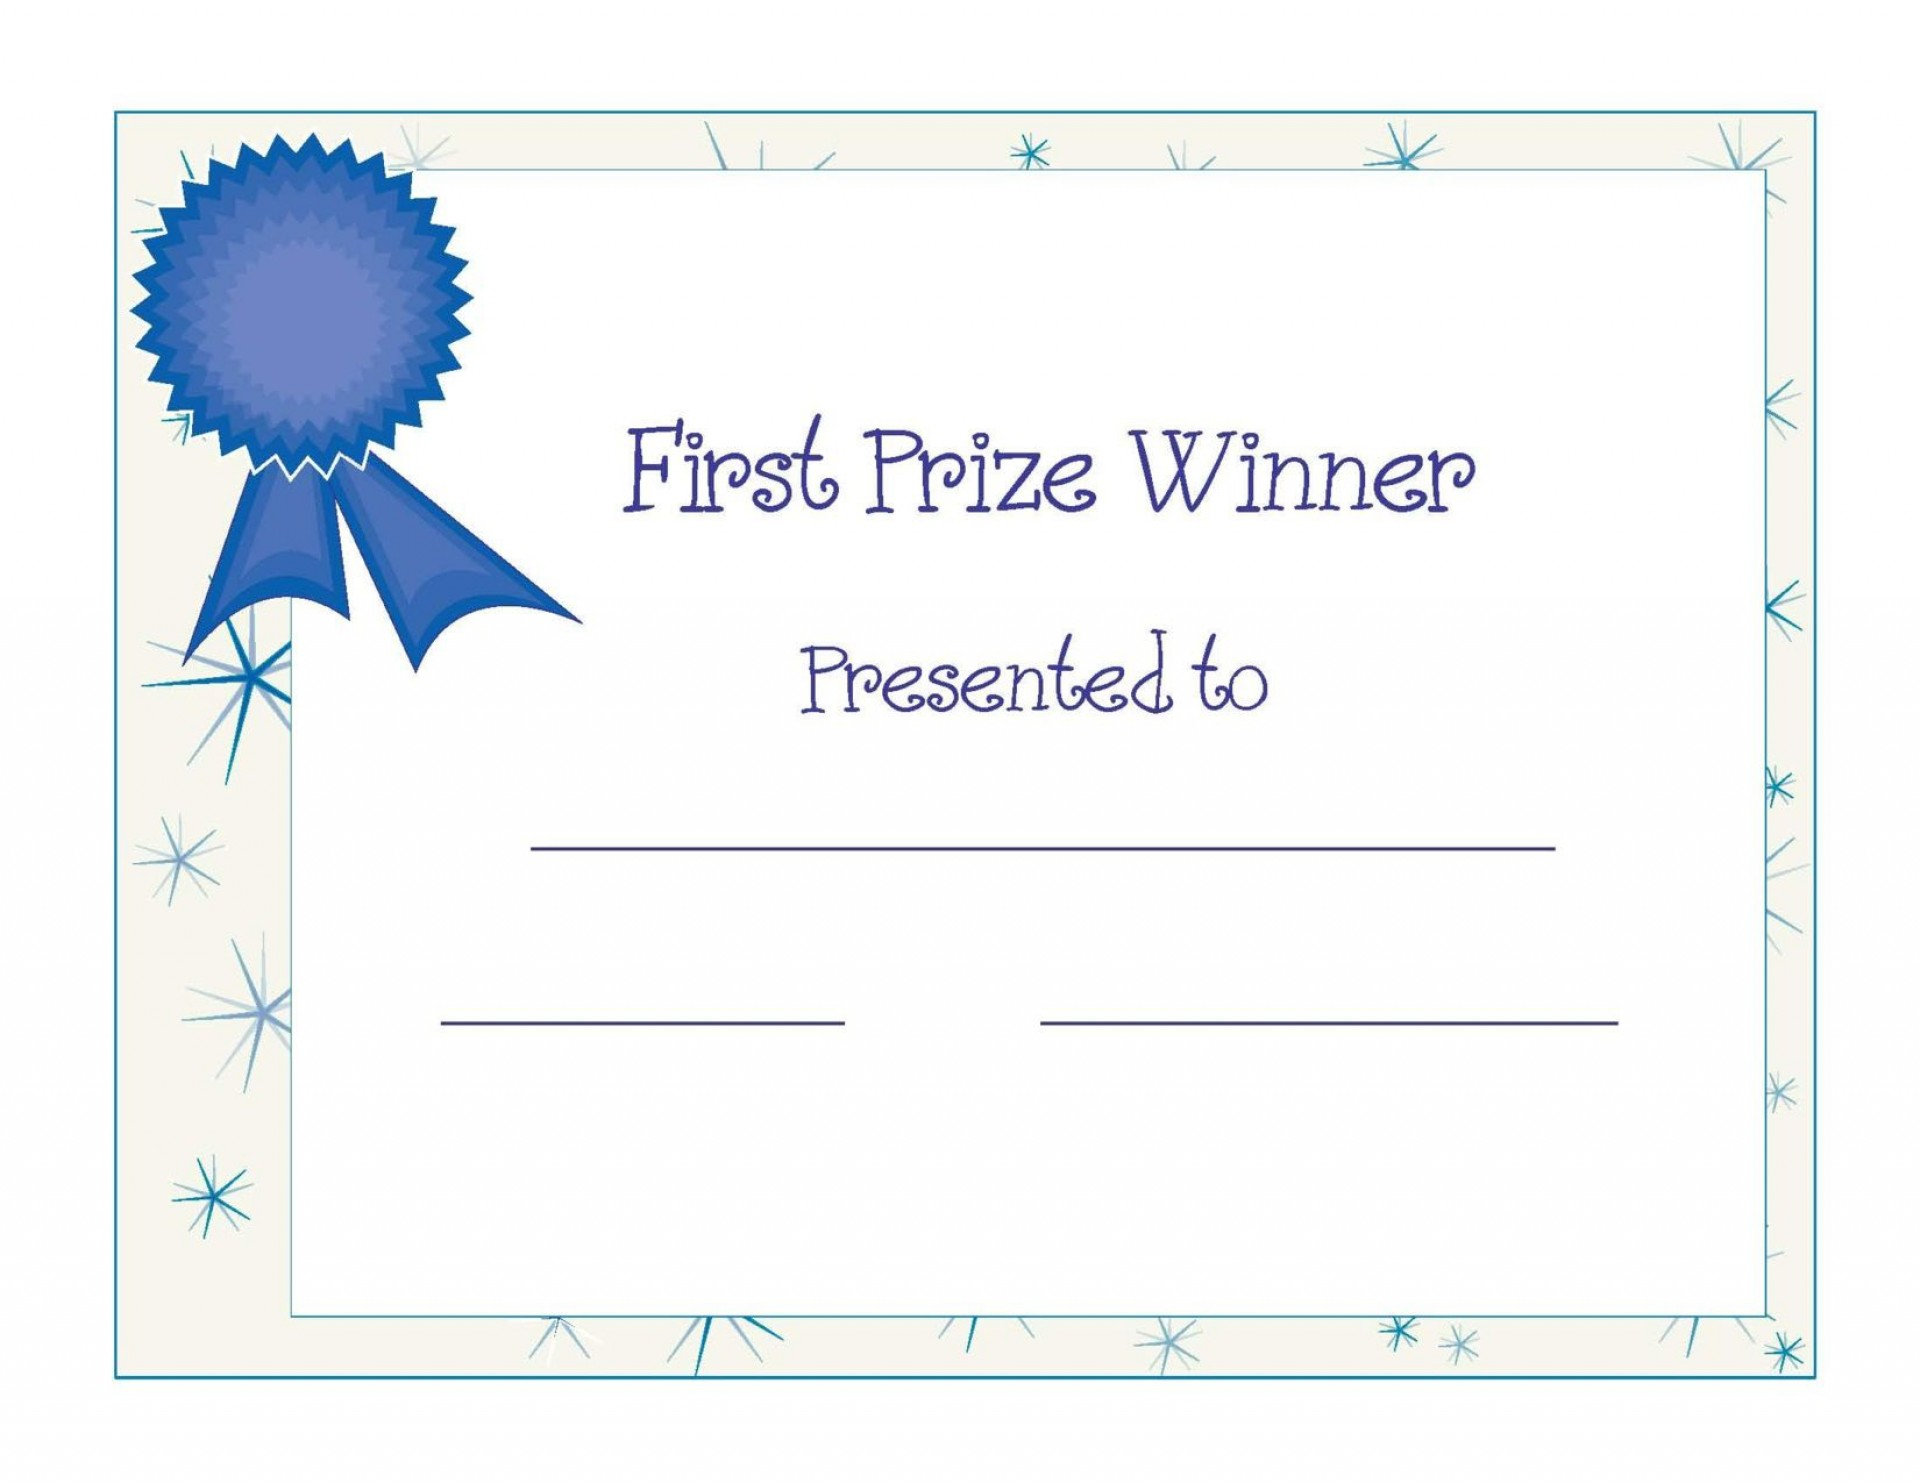 000 Fearsome Blank Award Certificate Template Image  Printable Math Editable Free1920